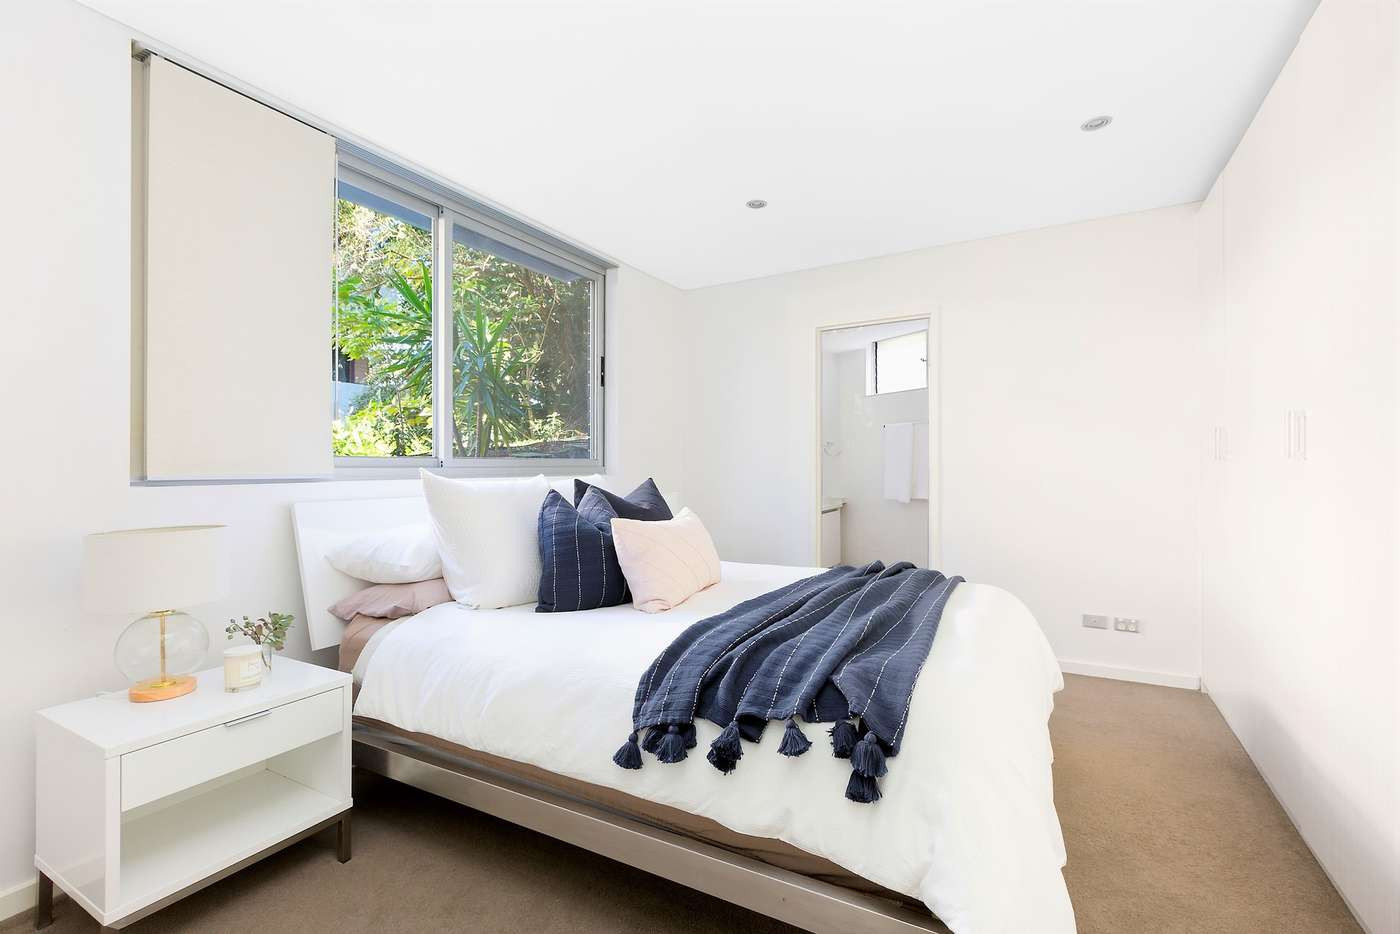 Fifth view of Homely apartment listing, 206/47 Lewis Street, Dee Why NSW 2099